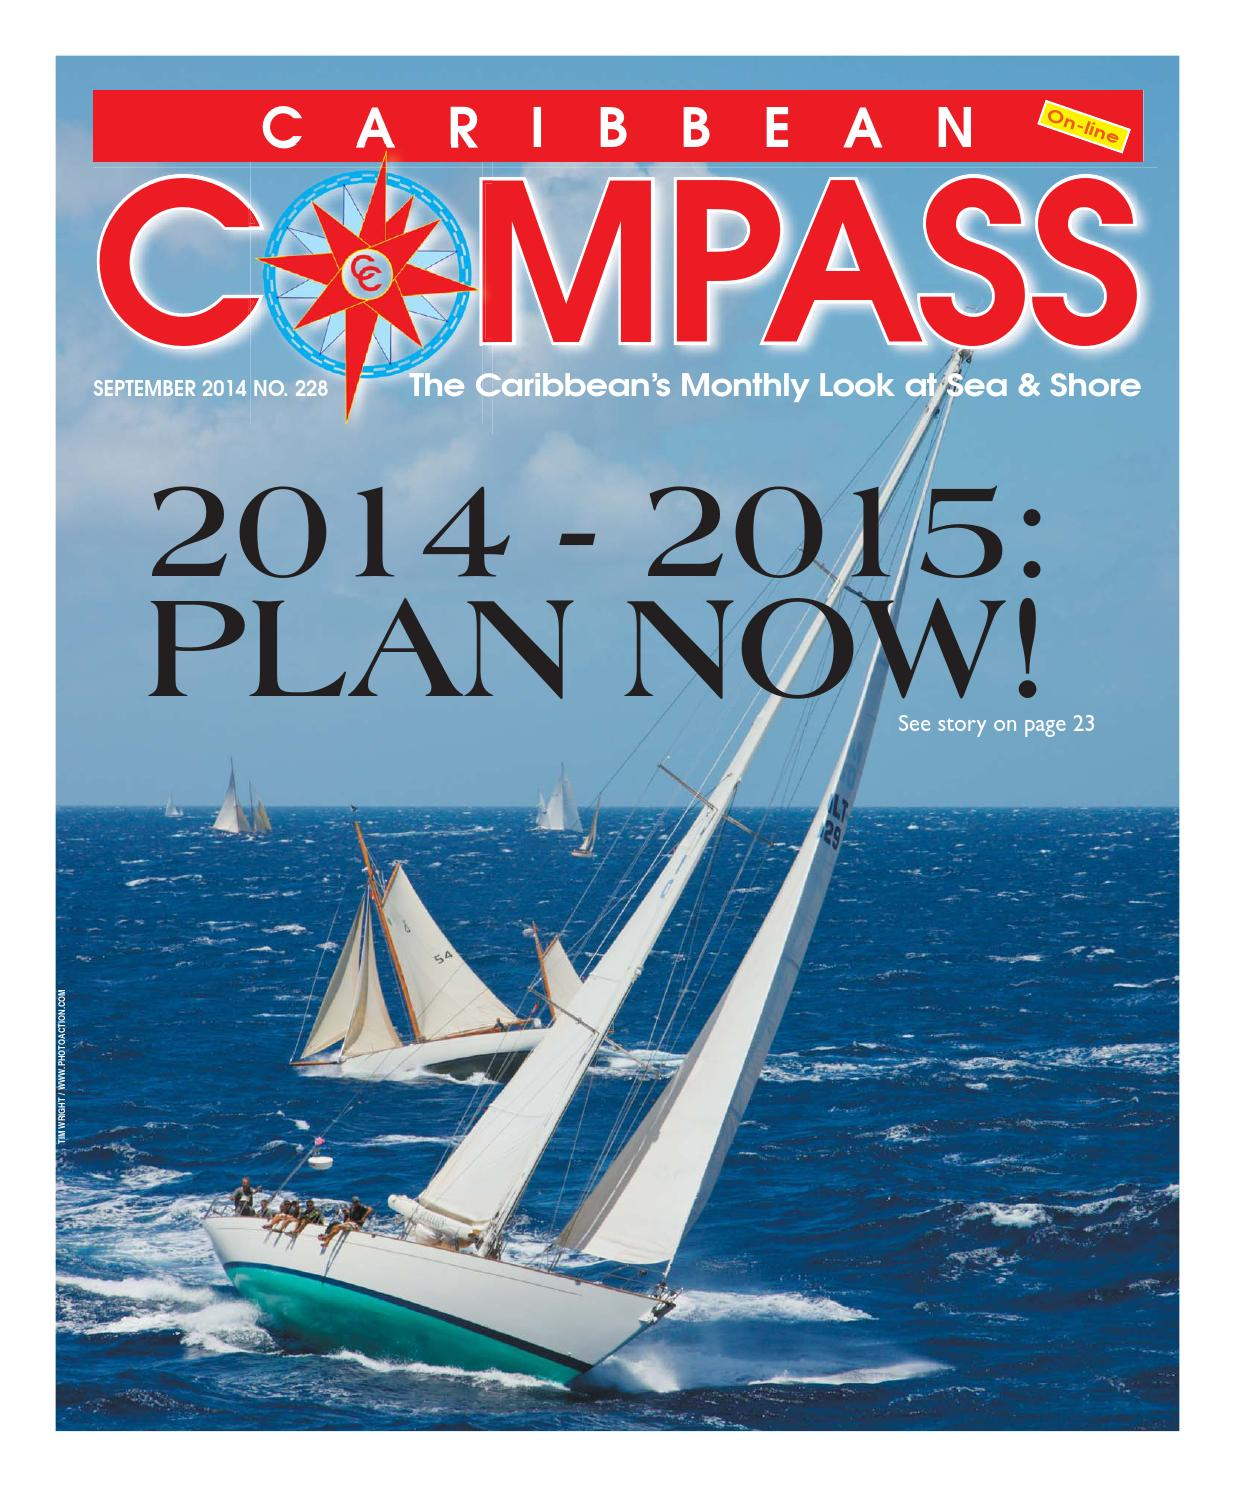 Caribbean compass yachting magazine september 2014 by compass caribbean compass yachting magazine september 2014 by compass publishing issuu fandeluxe